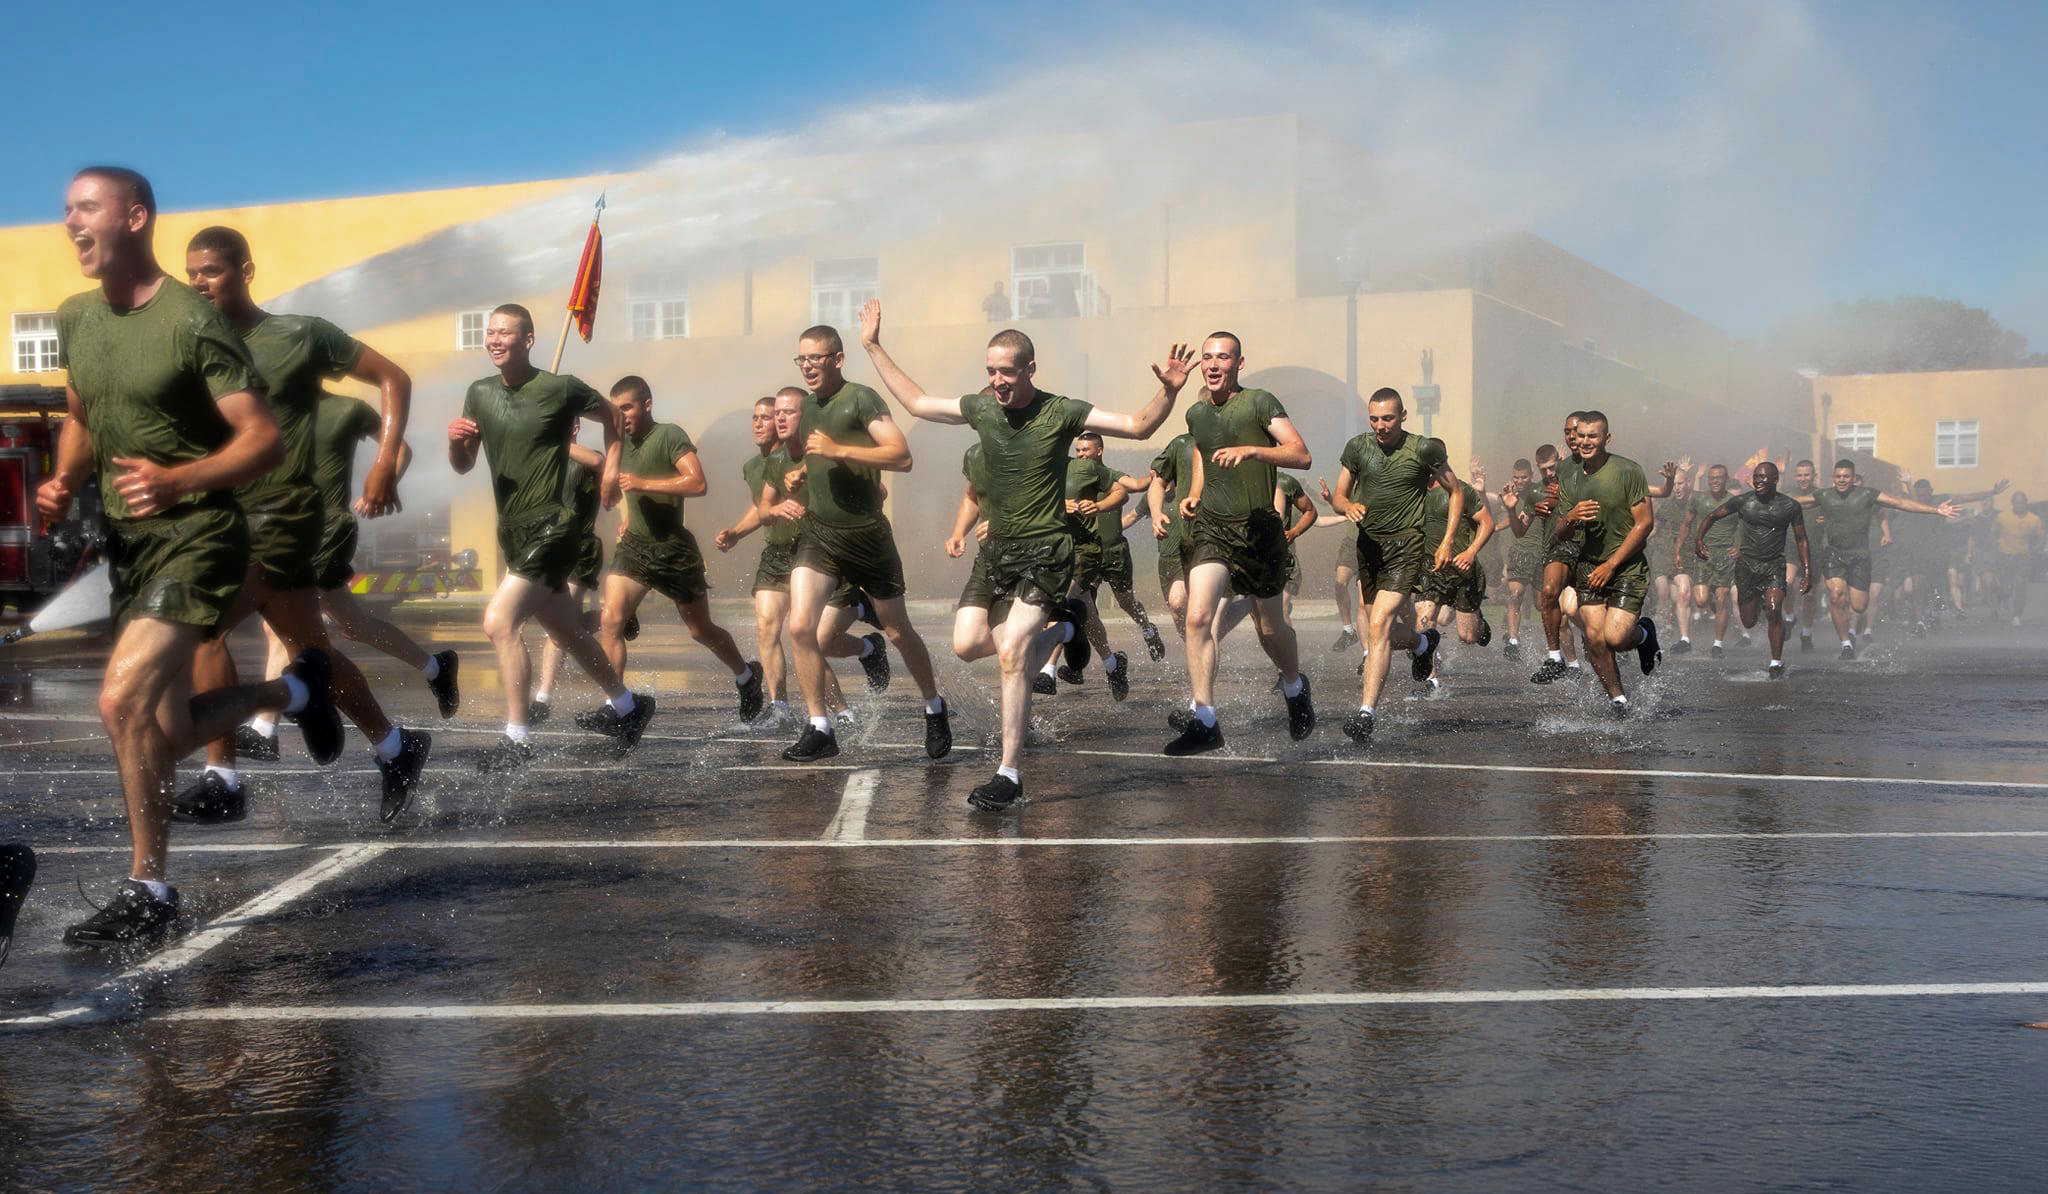 New Marines with Fox Company, 2nd Recruit Training Battalion, participate in a motivational run at Marine Corps Recruit Depot, San Diego, April 28, 2021.